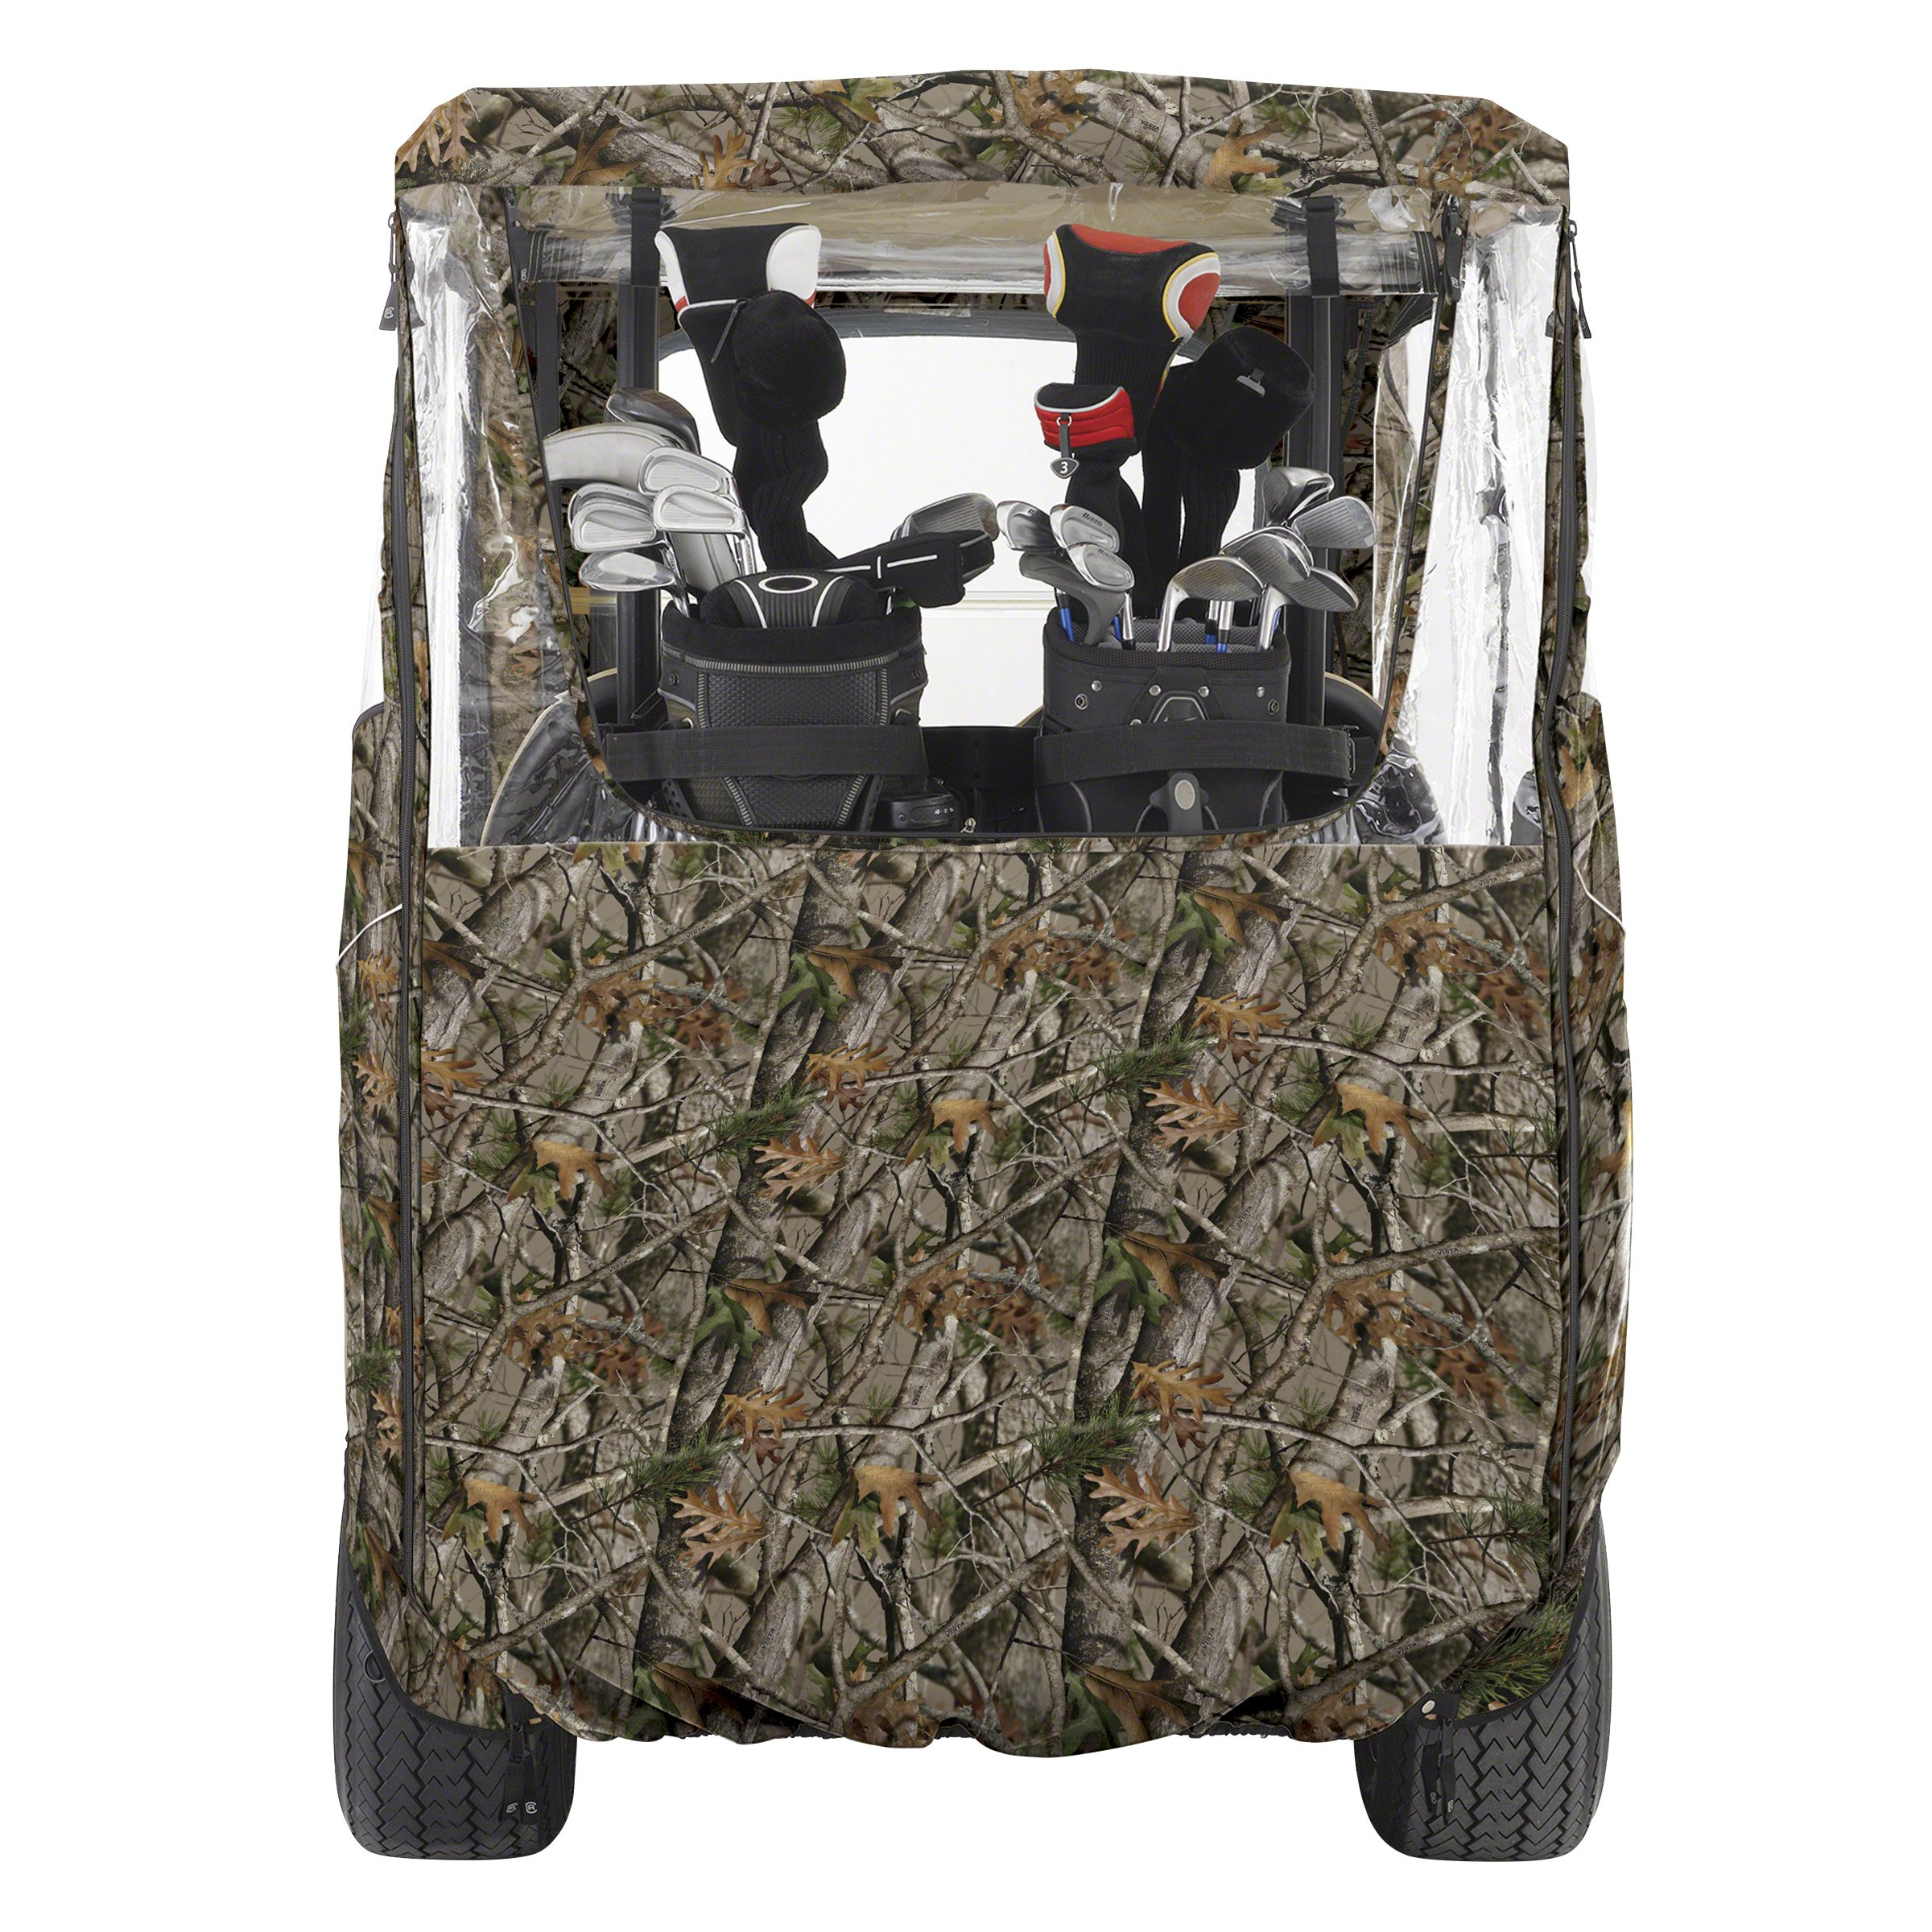 Classic Accessories Fairway Golf Cart Deluxe Enclosure, Camo by Classic Accessories (Image #4)